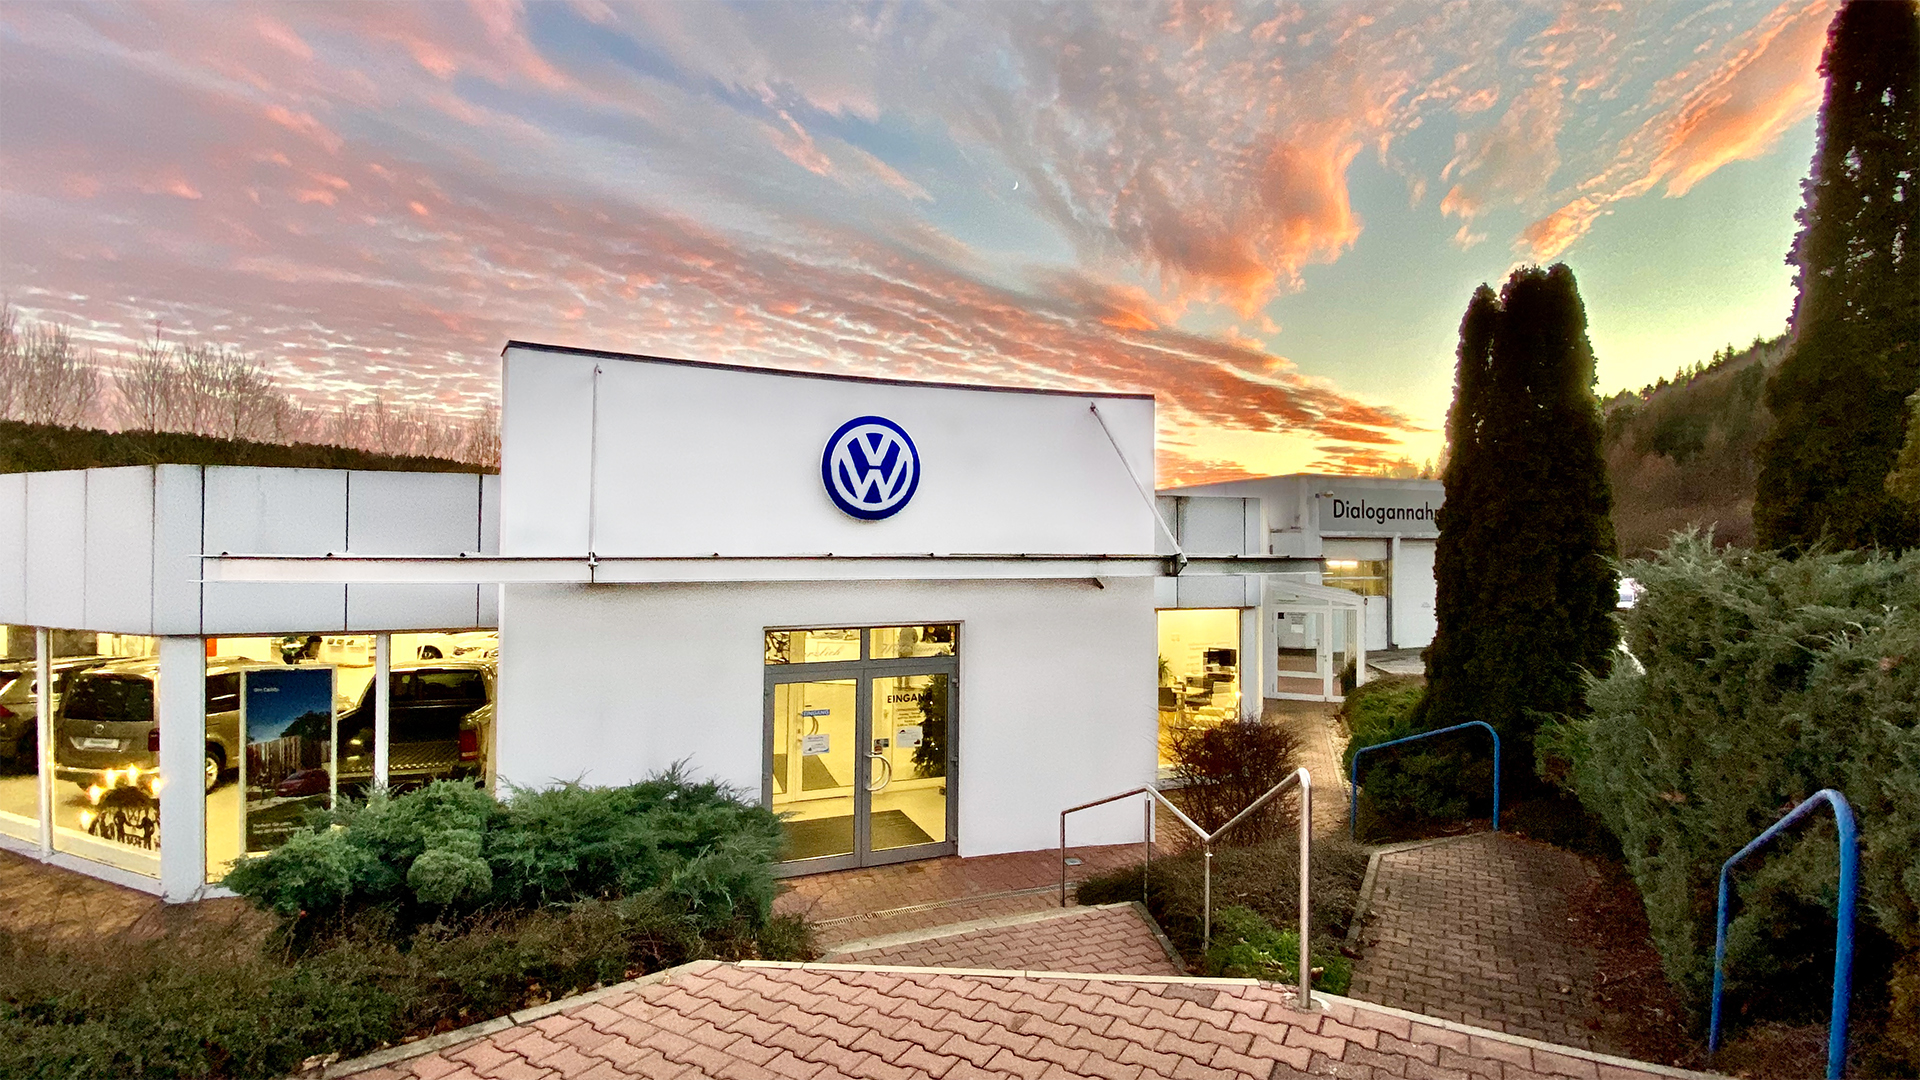 VW-Haus in Aue-Bad Schlema / OT Alberoda